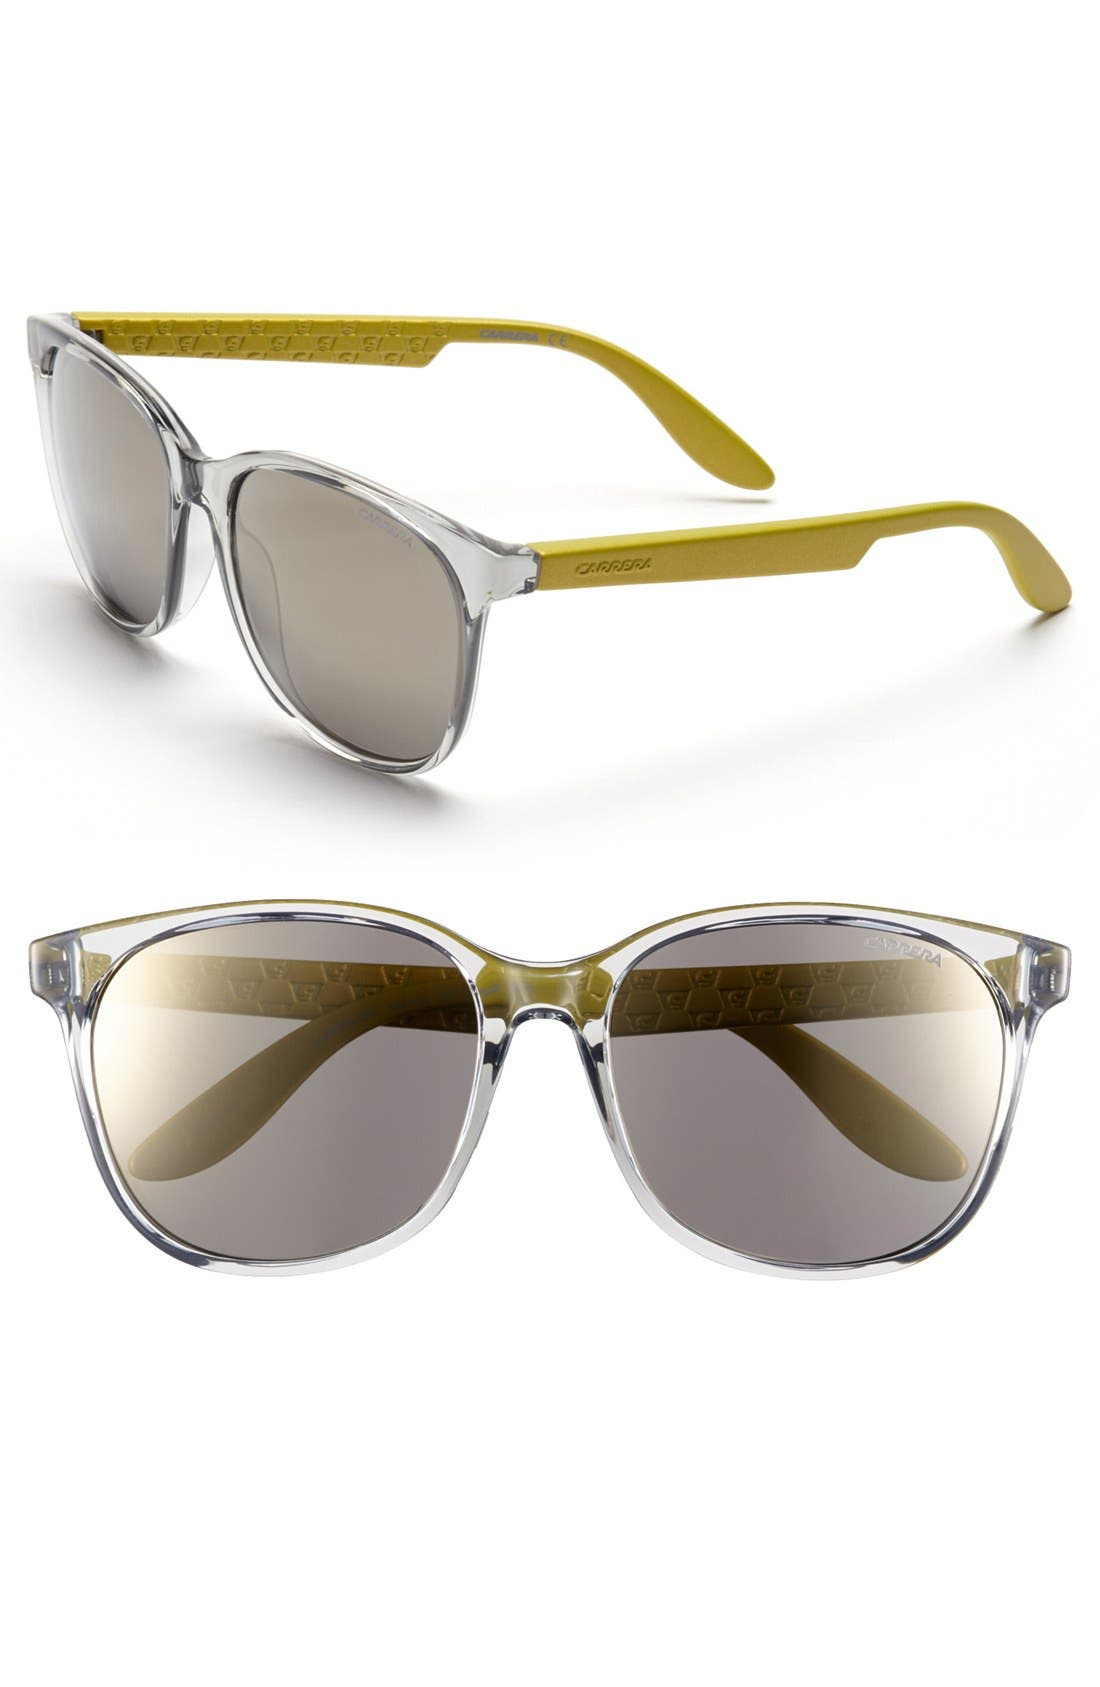 Main Image - Carrera Eyewear 56 mm Sunglasses